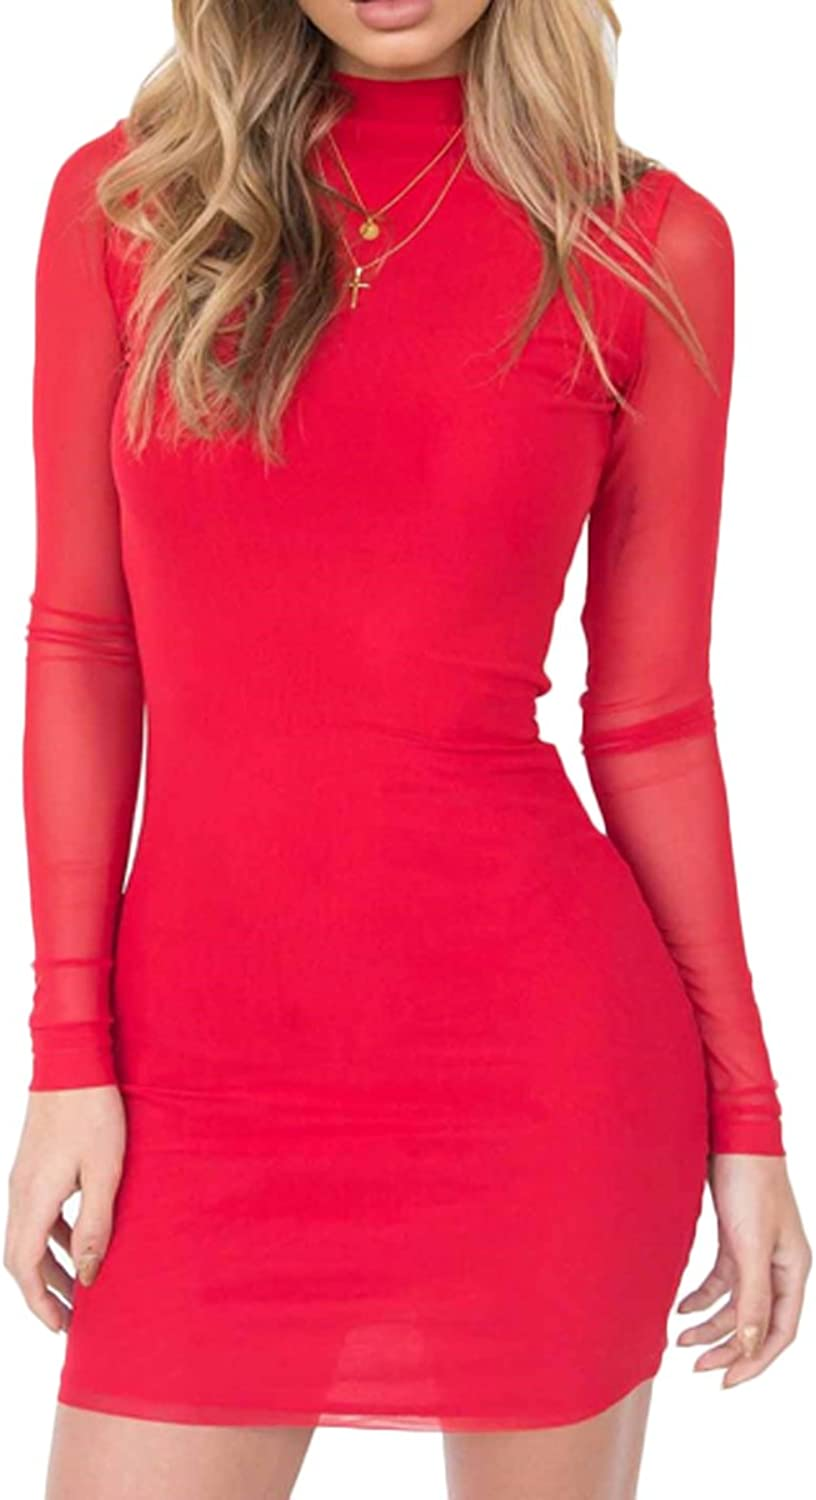 Sunfury Womens Mock Neck Sexy Mesh Long Sleeve Bodycon Party Mini Dress Clubwear